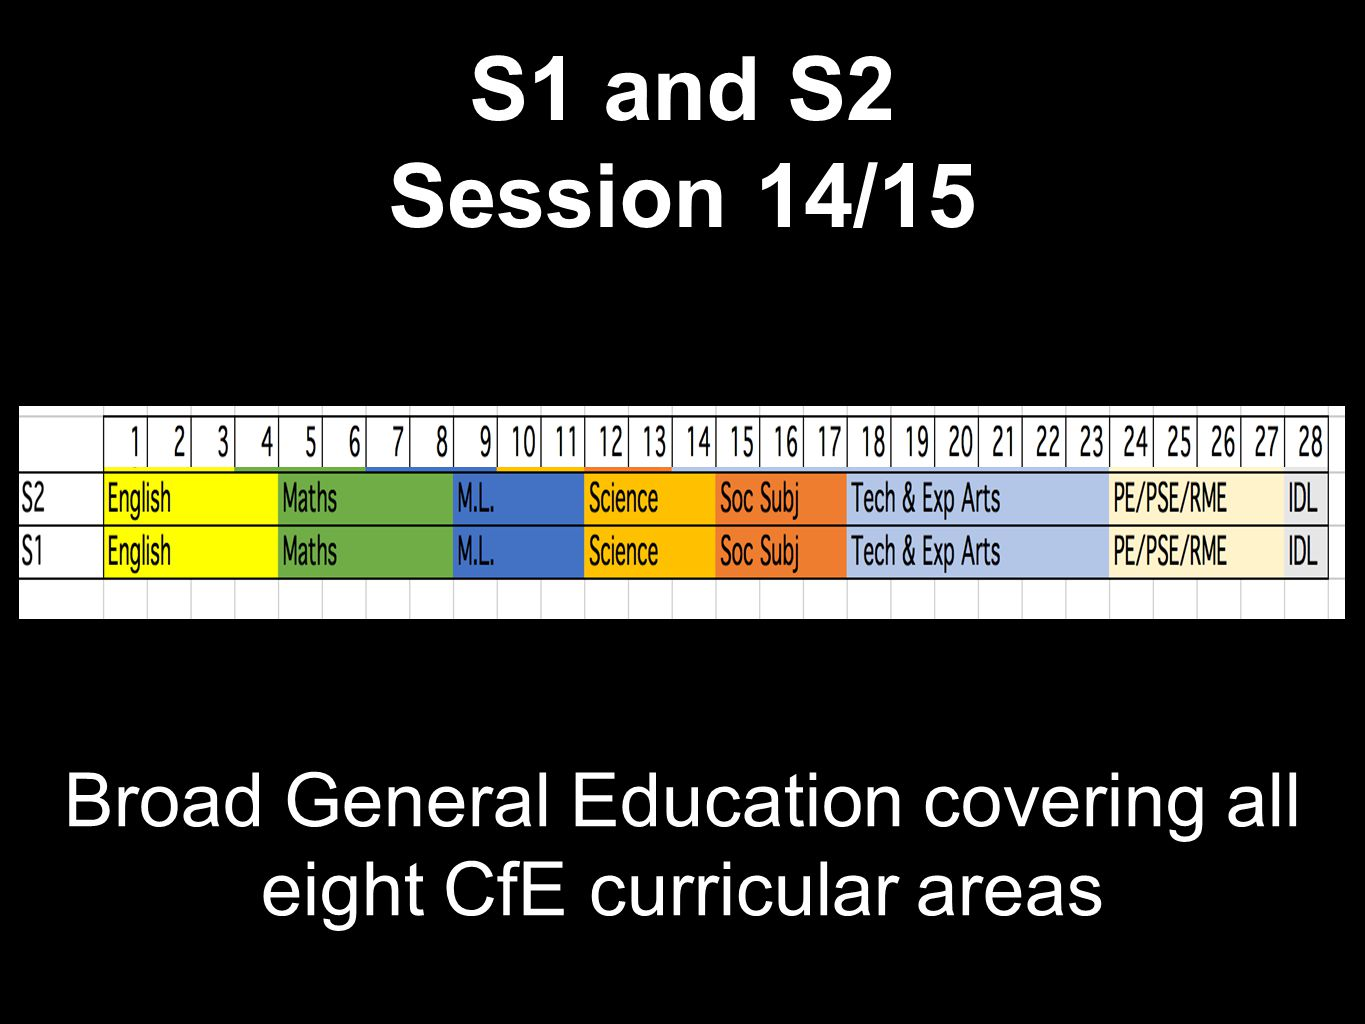 S1 and S2 Session 14/15 Broad General Education covering all eight CfE curricular areas